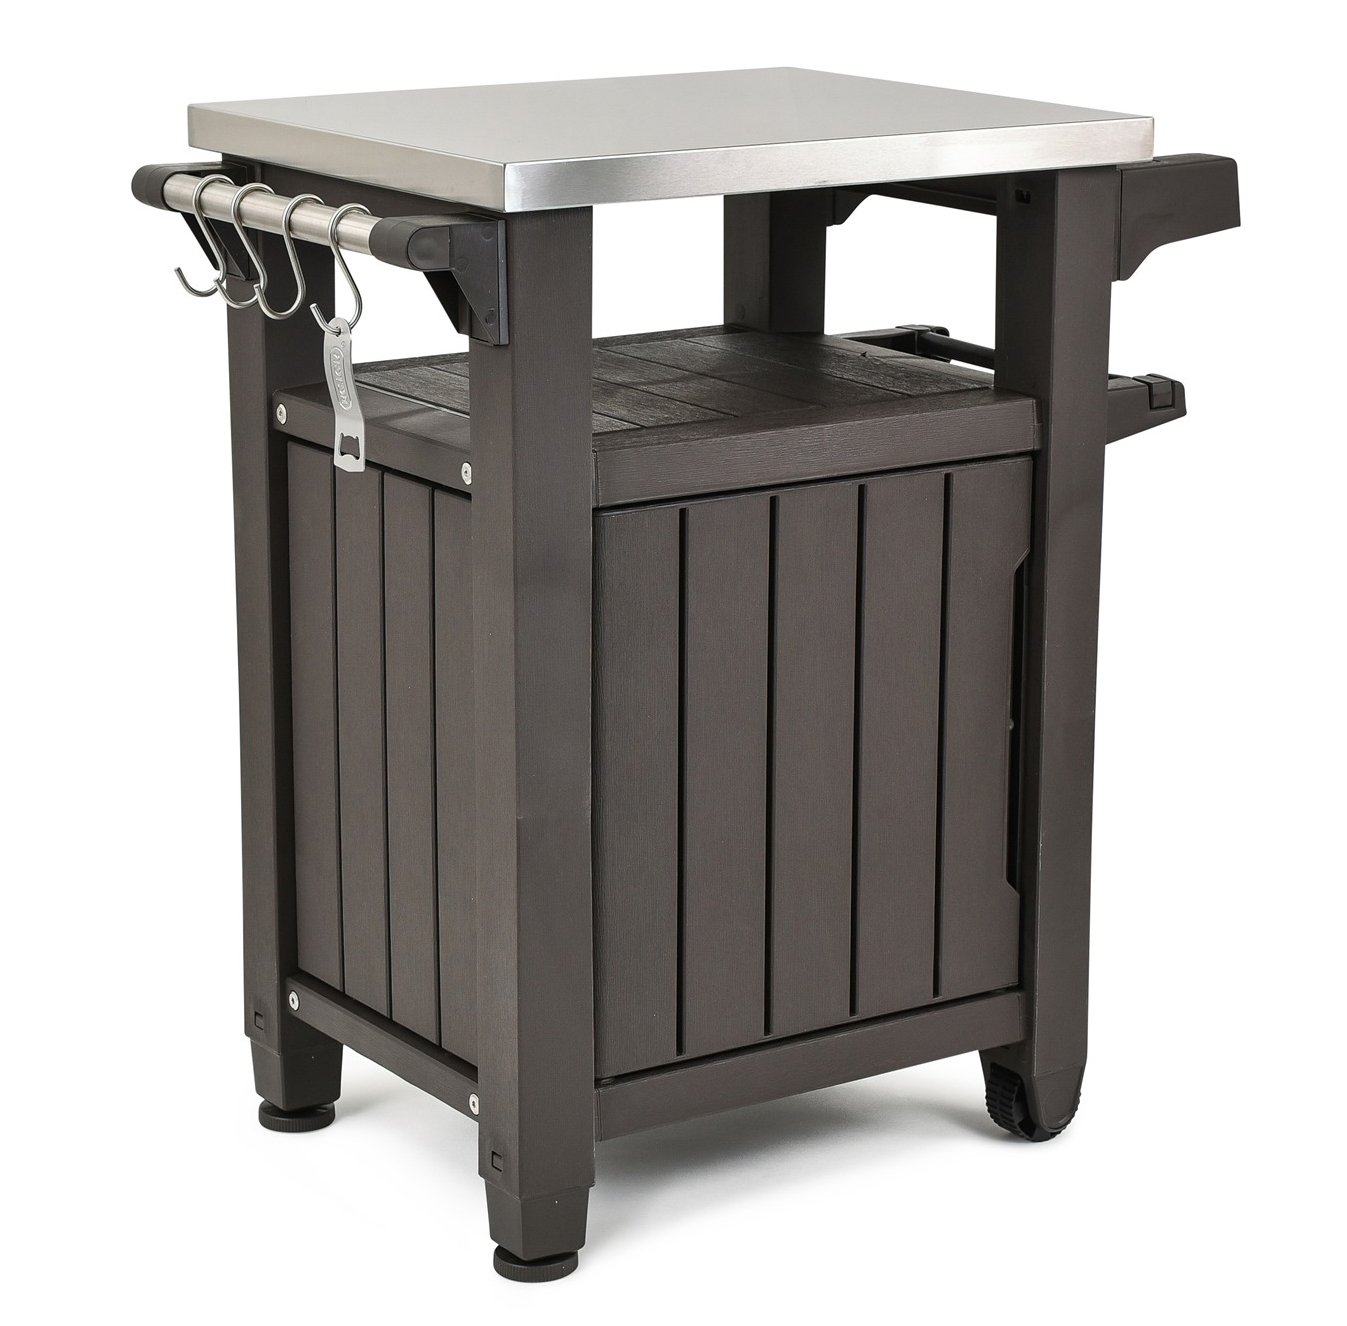 Keter Unity Indoor Outdoor BBQ Entertainment Storage Table/Prep Station with Metal Top, Brown by Keter